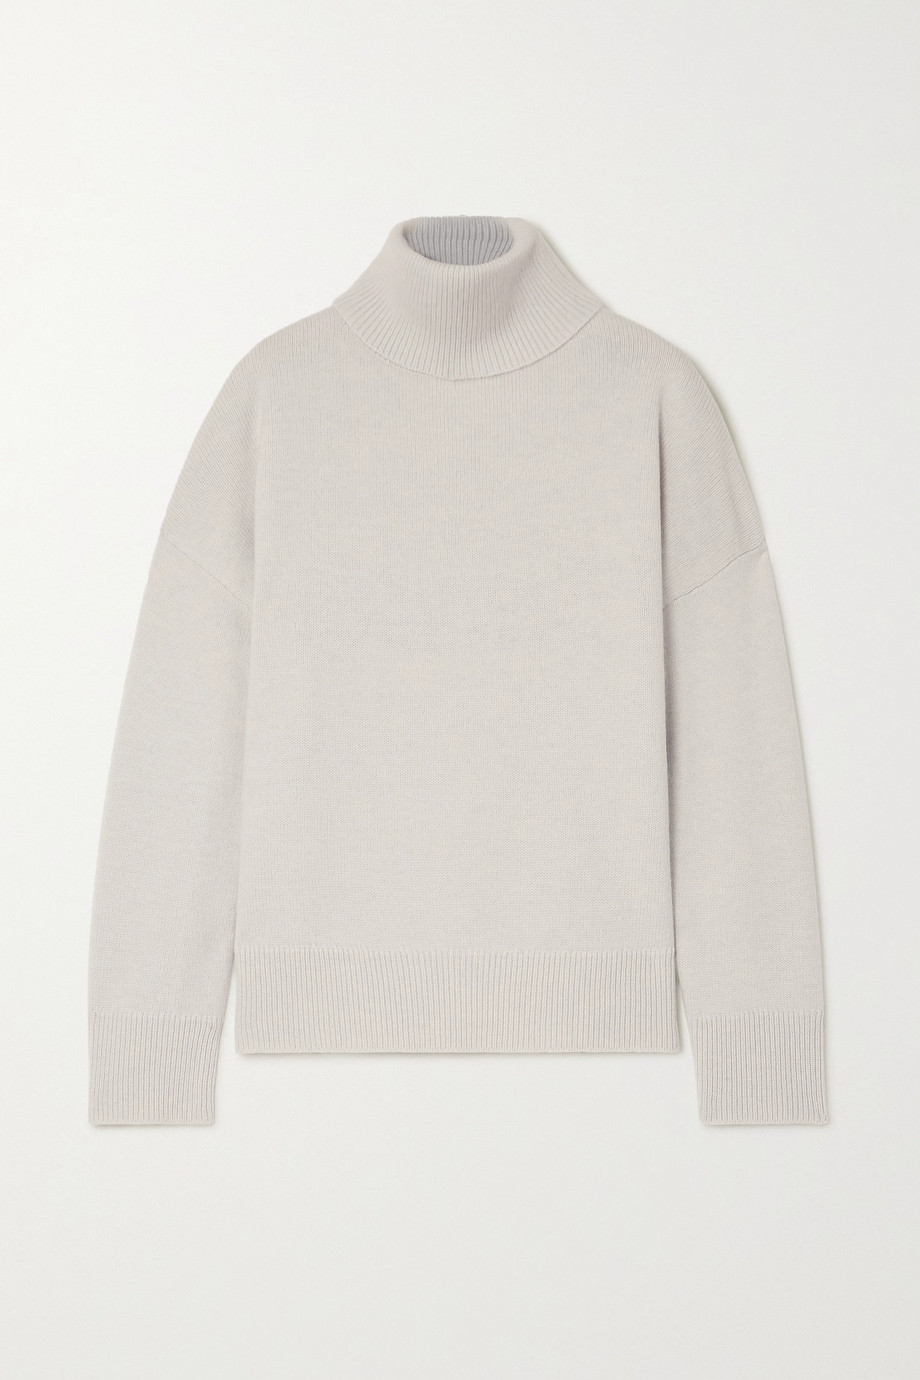 Co Wool and cashmere-blend turtleneck sweater